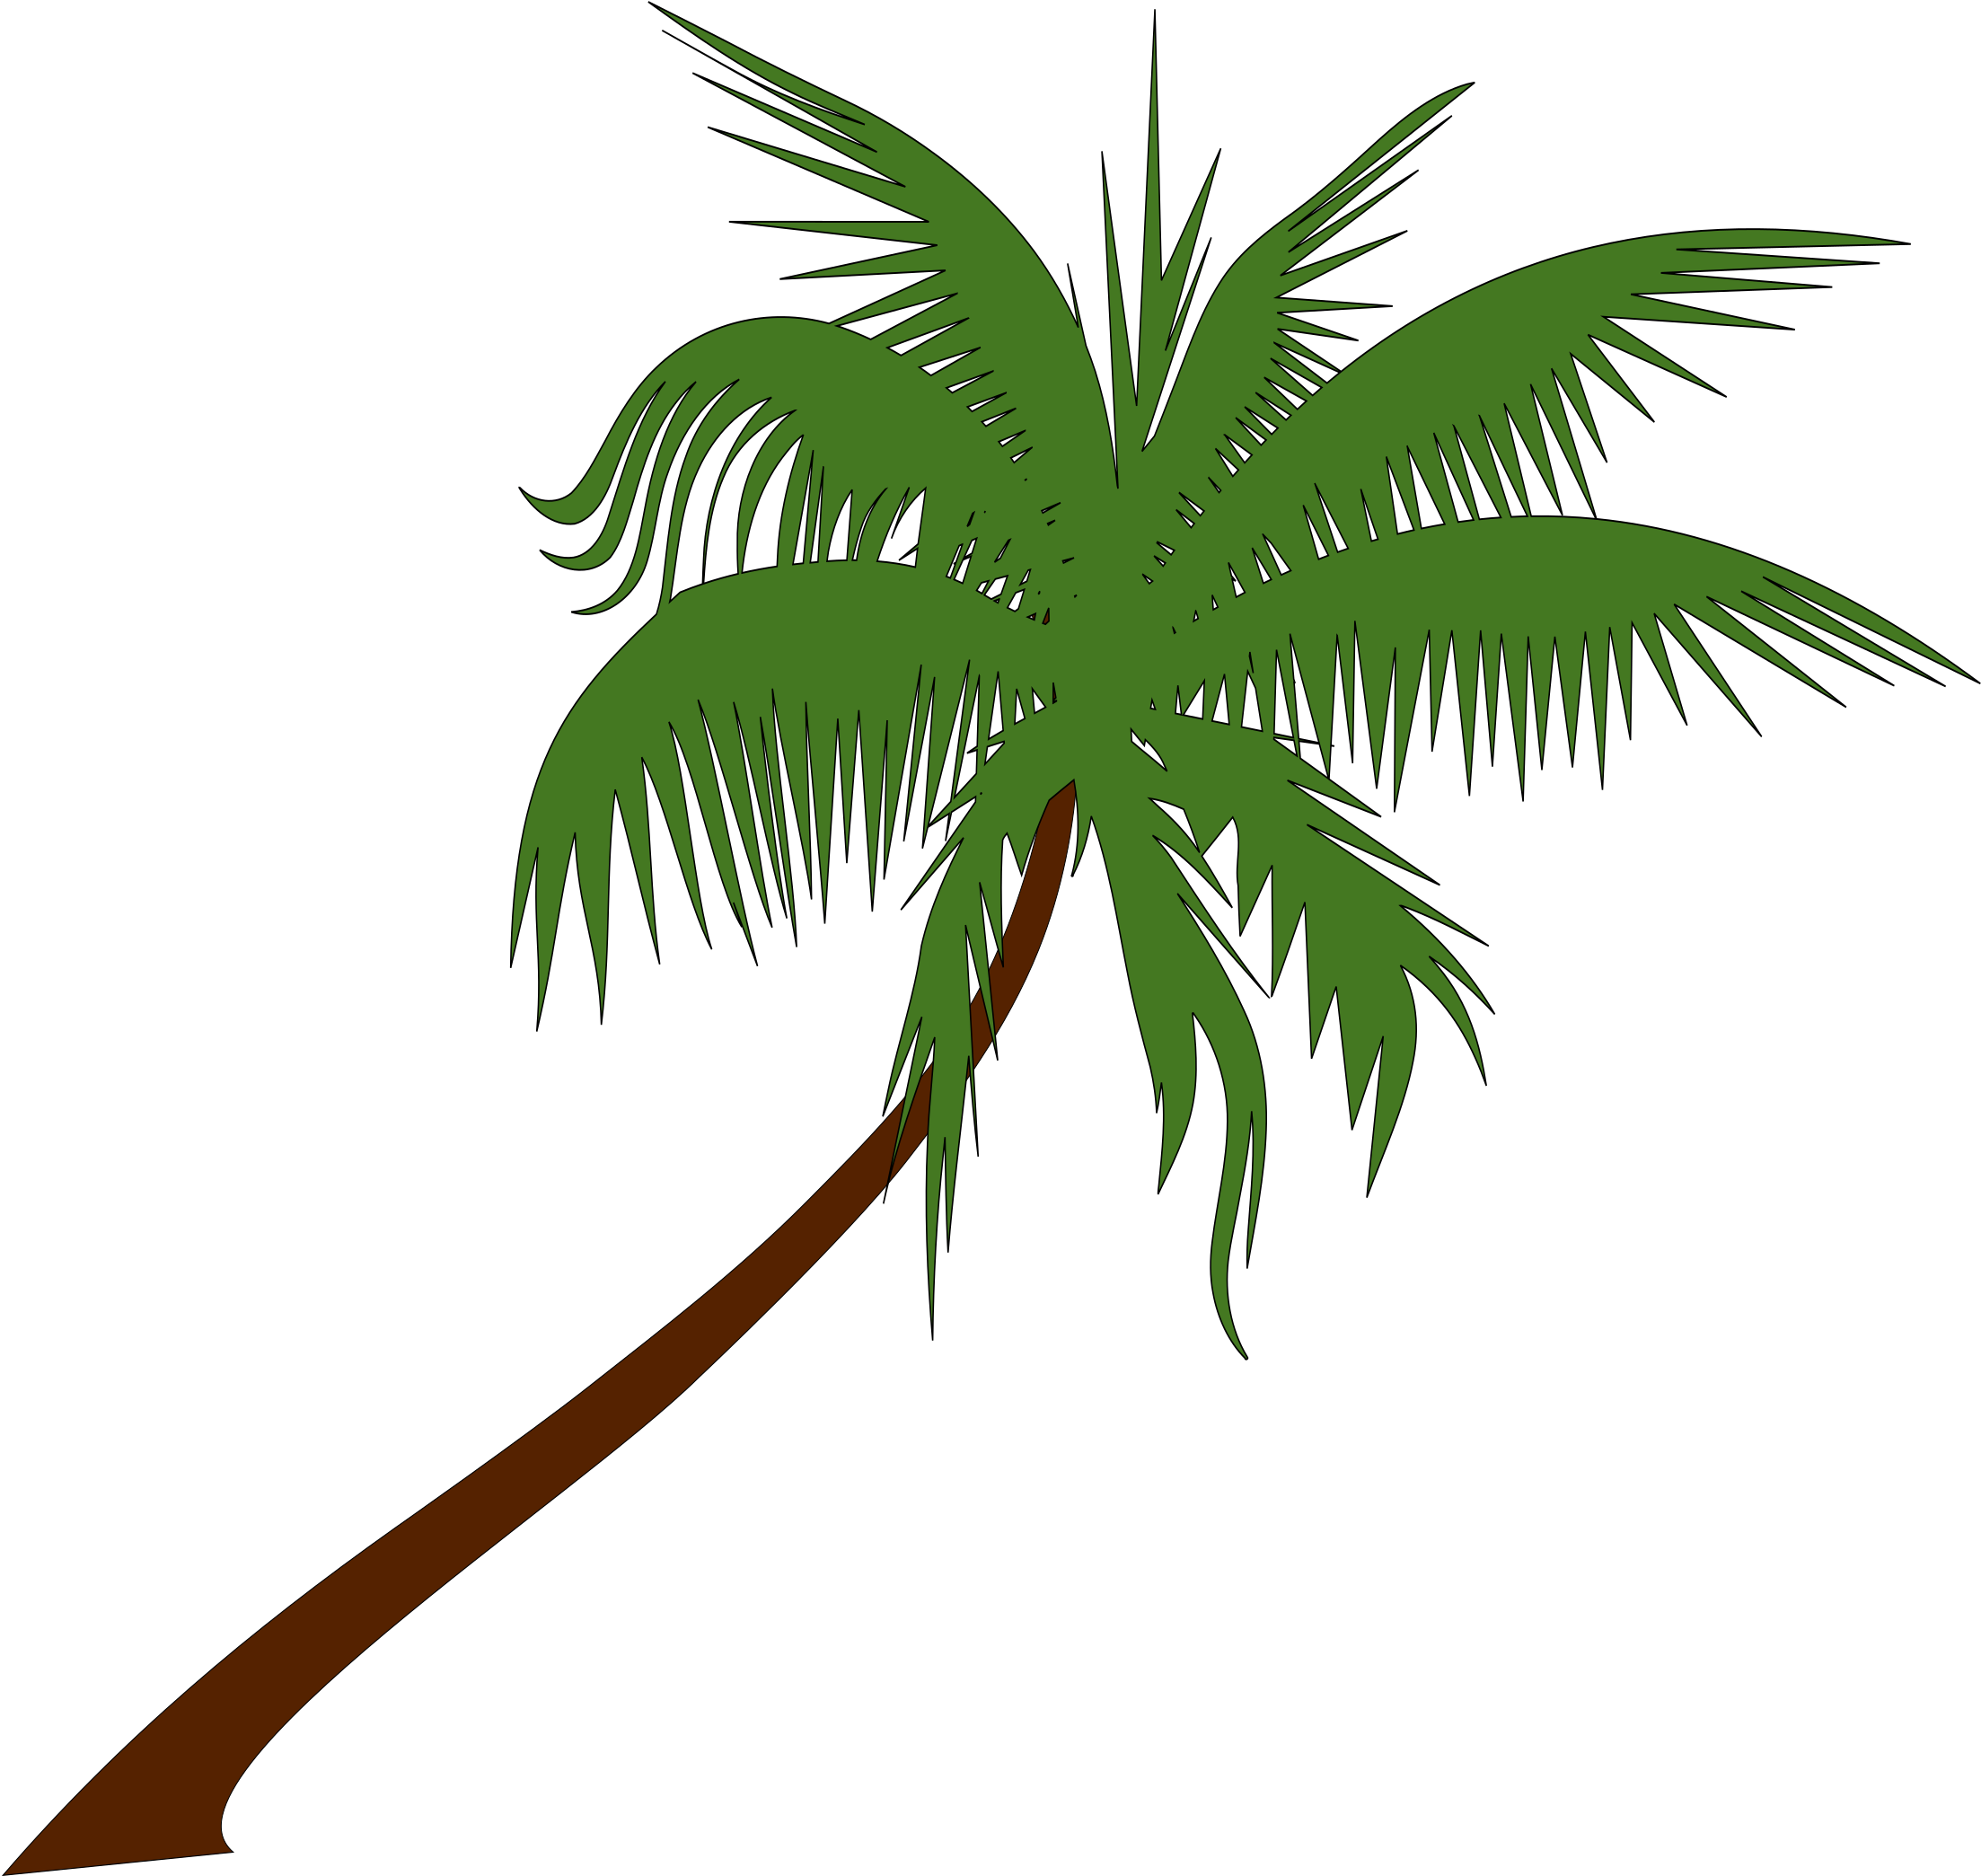 Palm leaf drawing png. Download tree at getdrawings